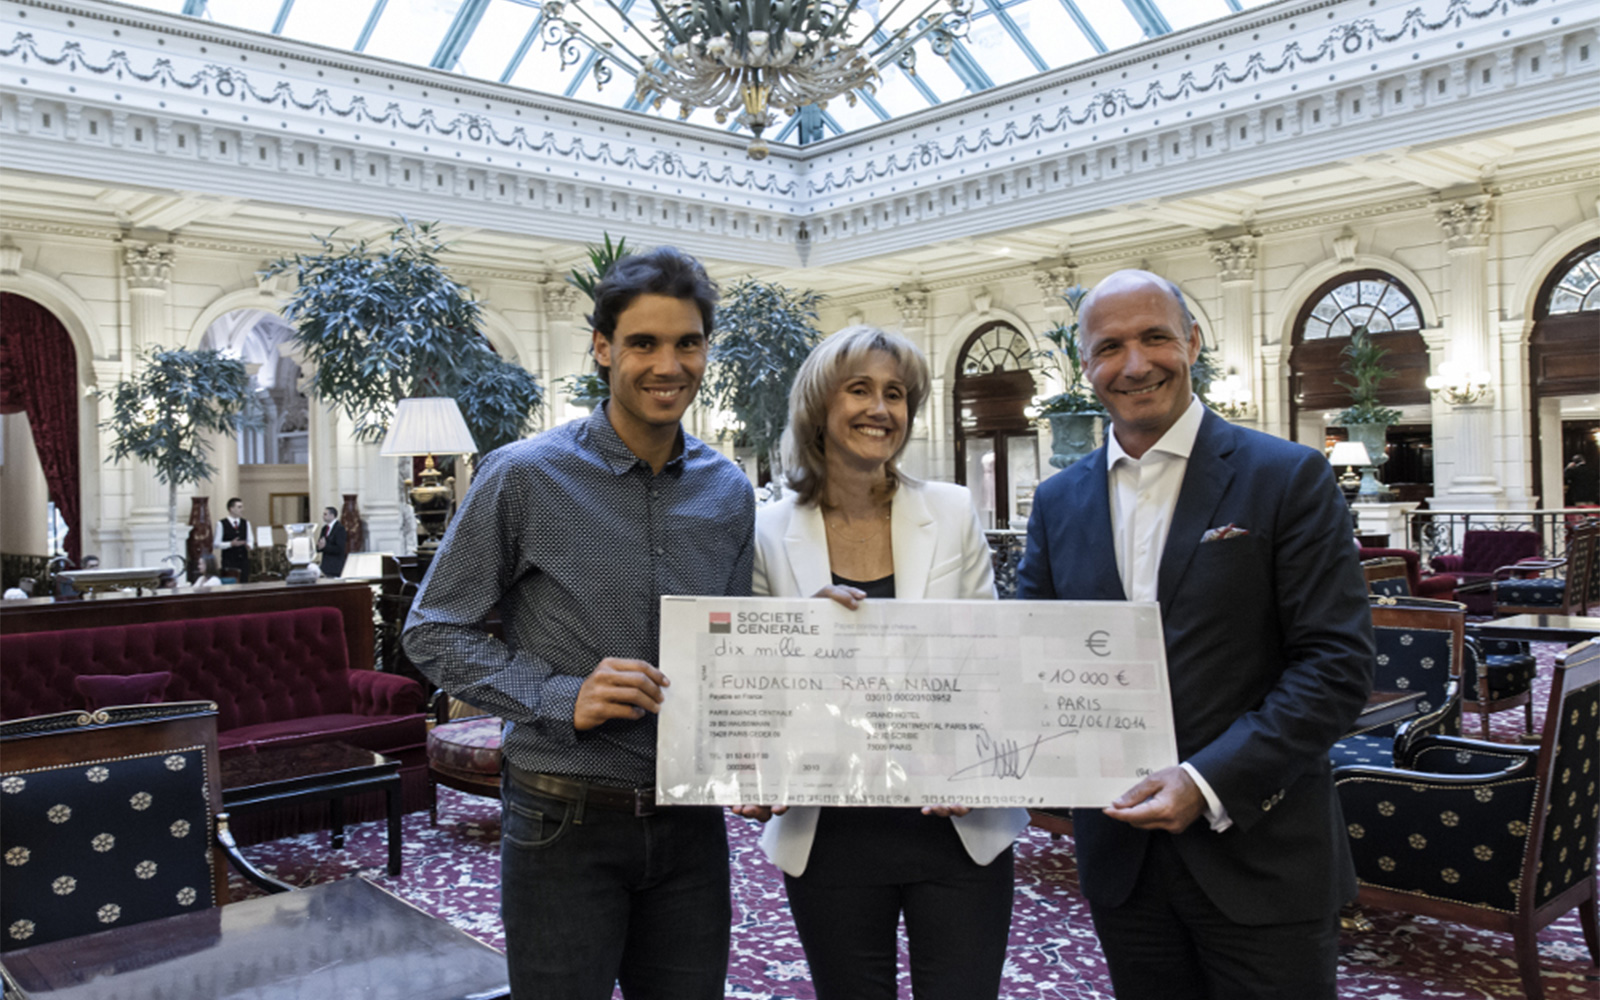 InterContinental Hotels Group gave a check for the value of ten thousands Euros to Rafael Nadal and Ana Maria Parera